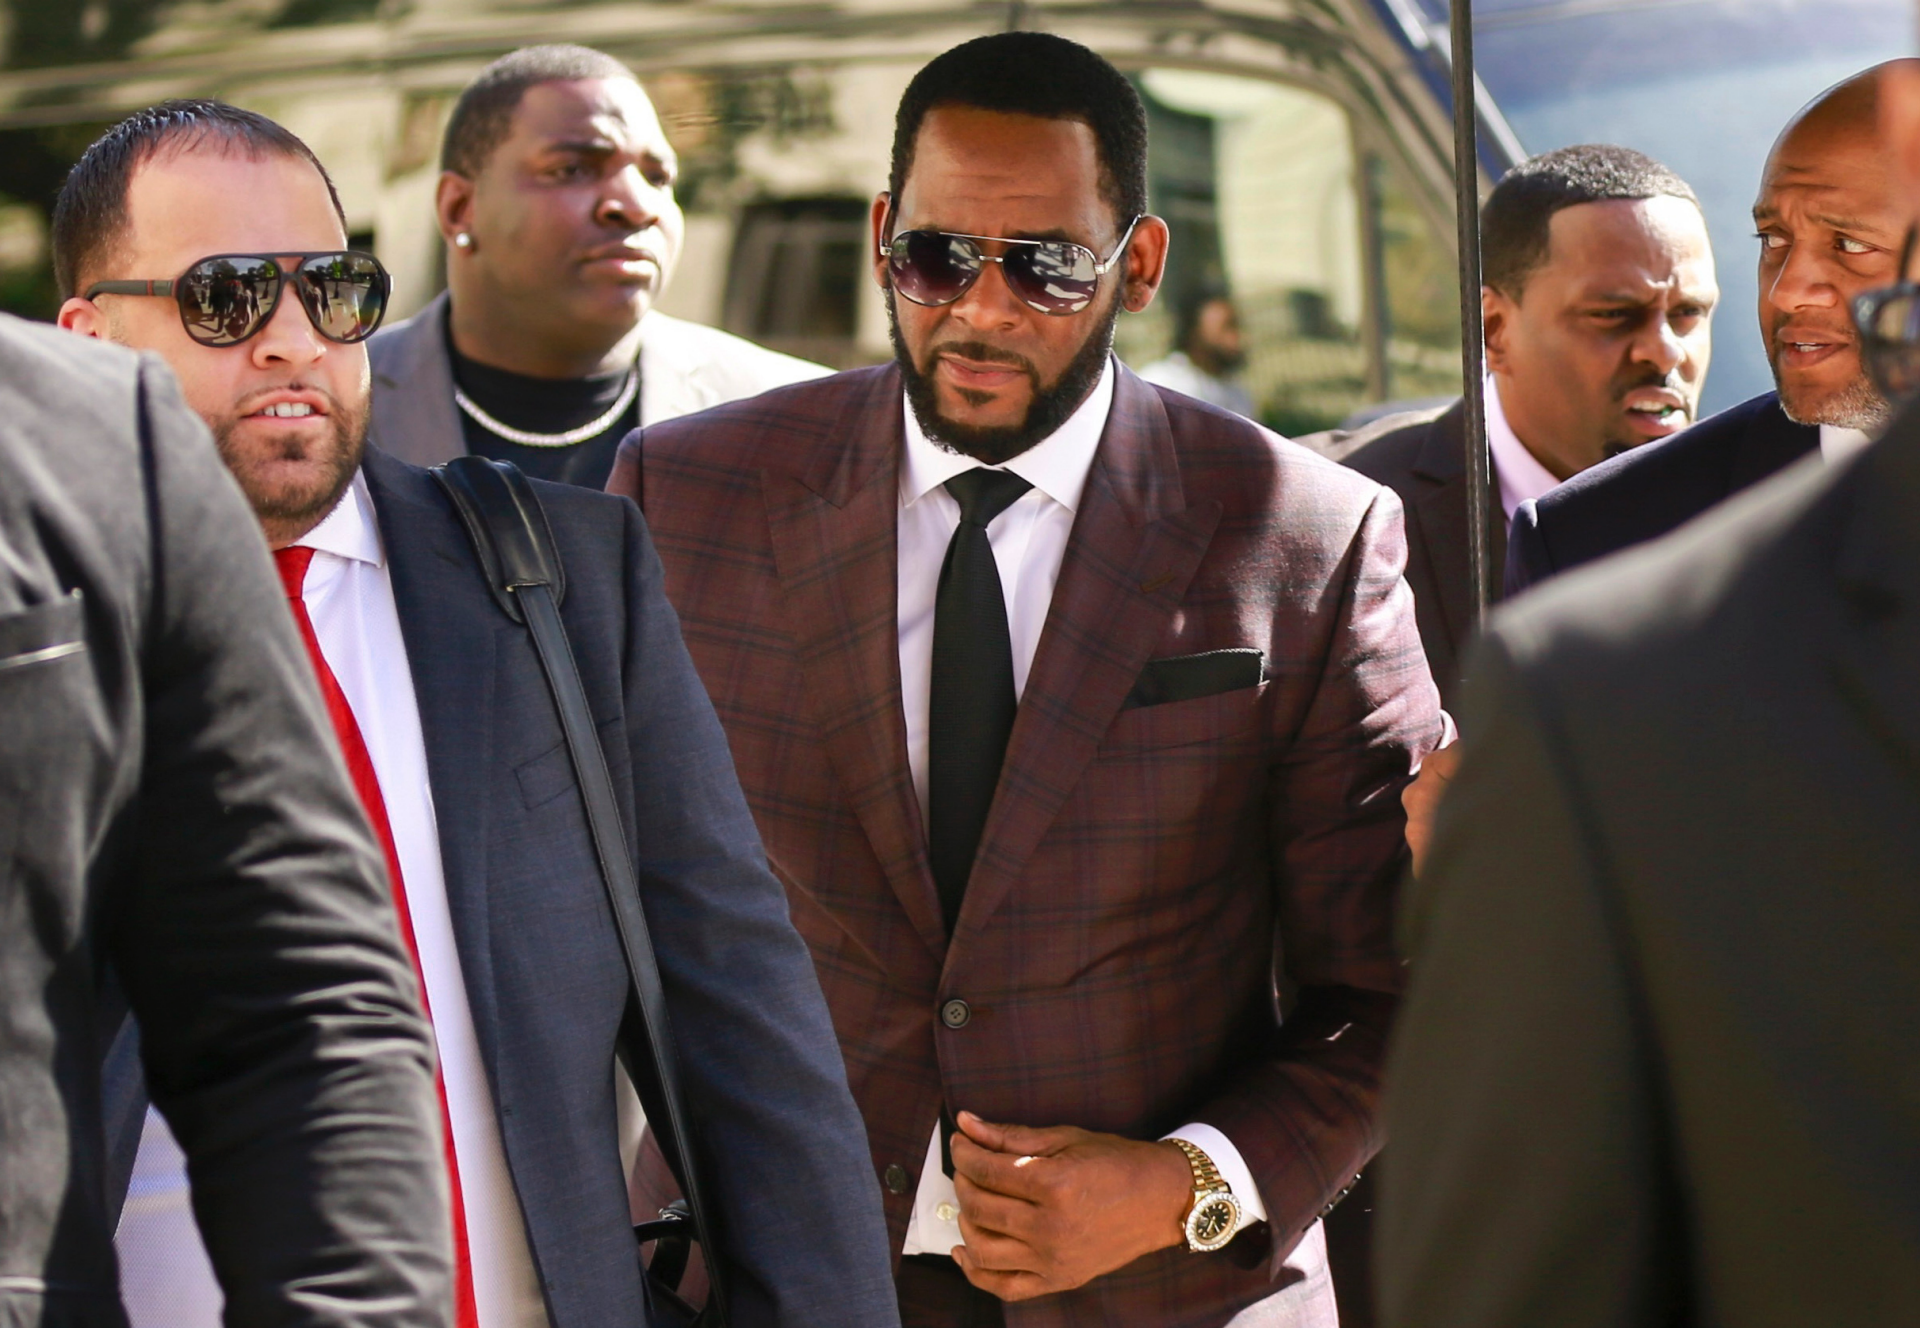 R. Kelly under pressure to make deal following federal charges in sex crime cases